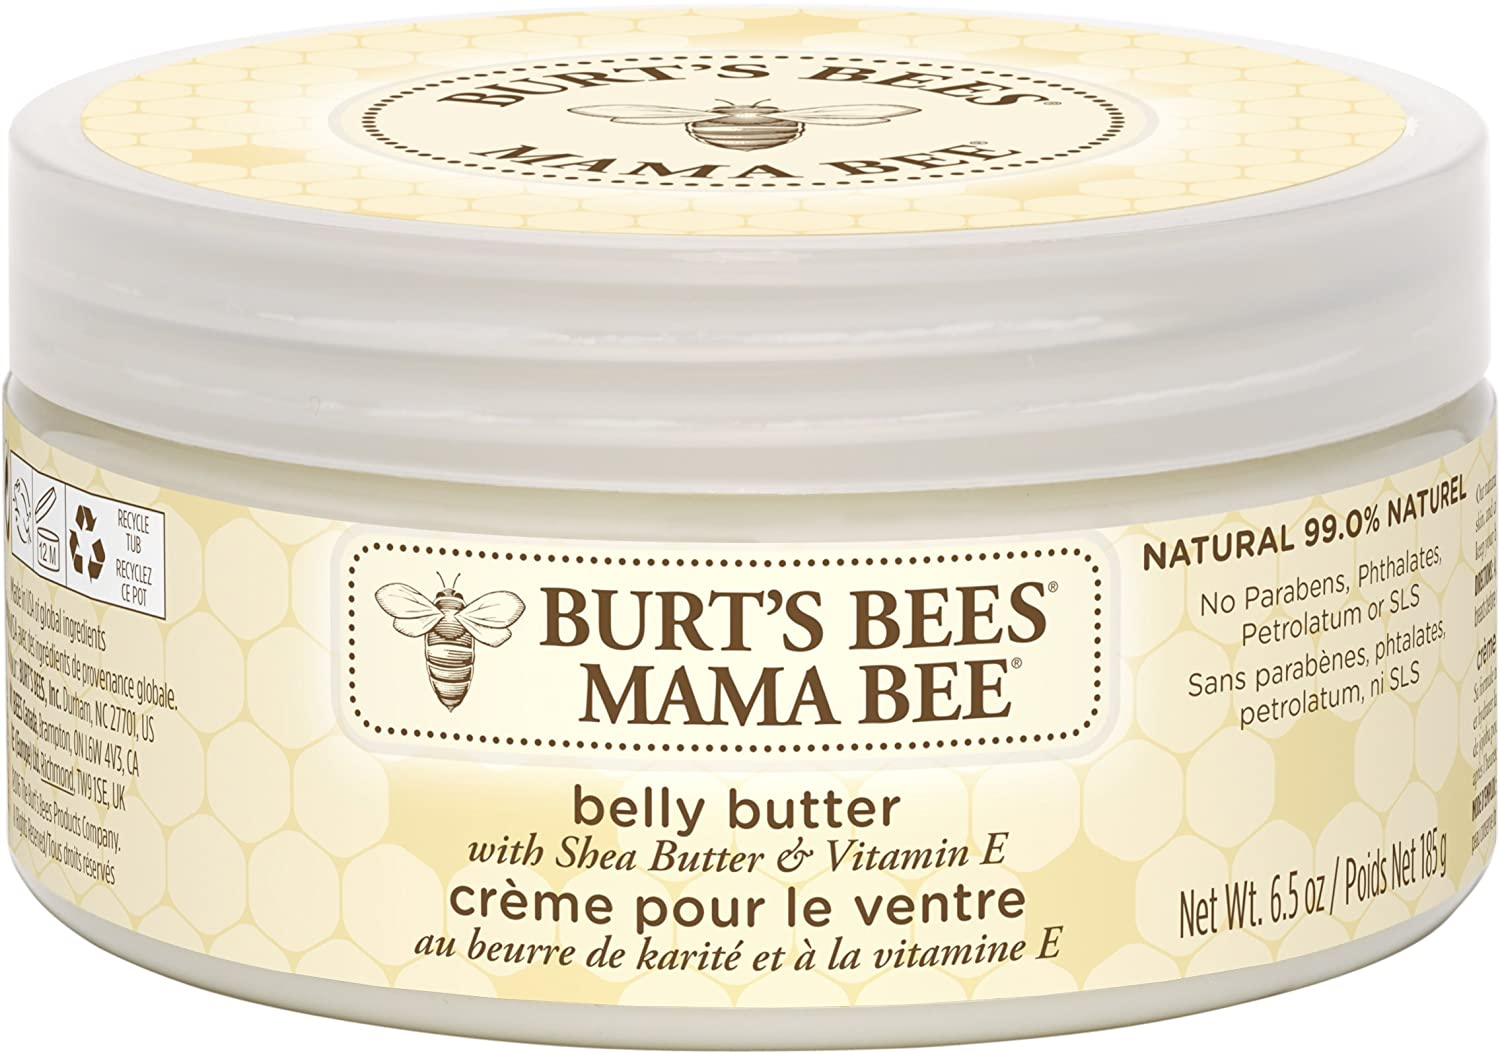 Image result for burt's bees tummy butter